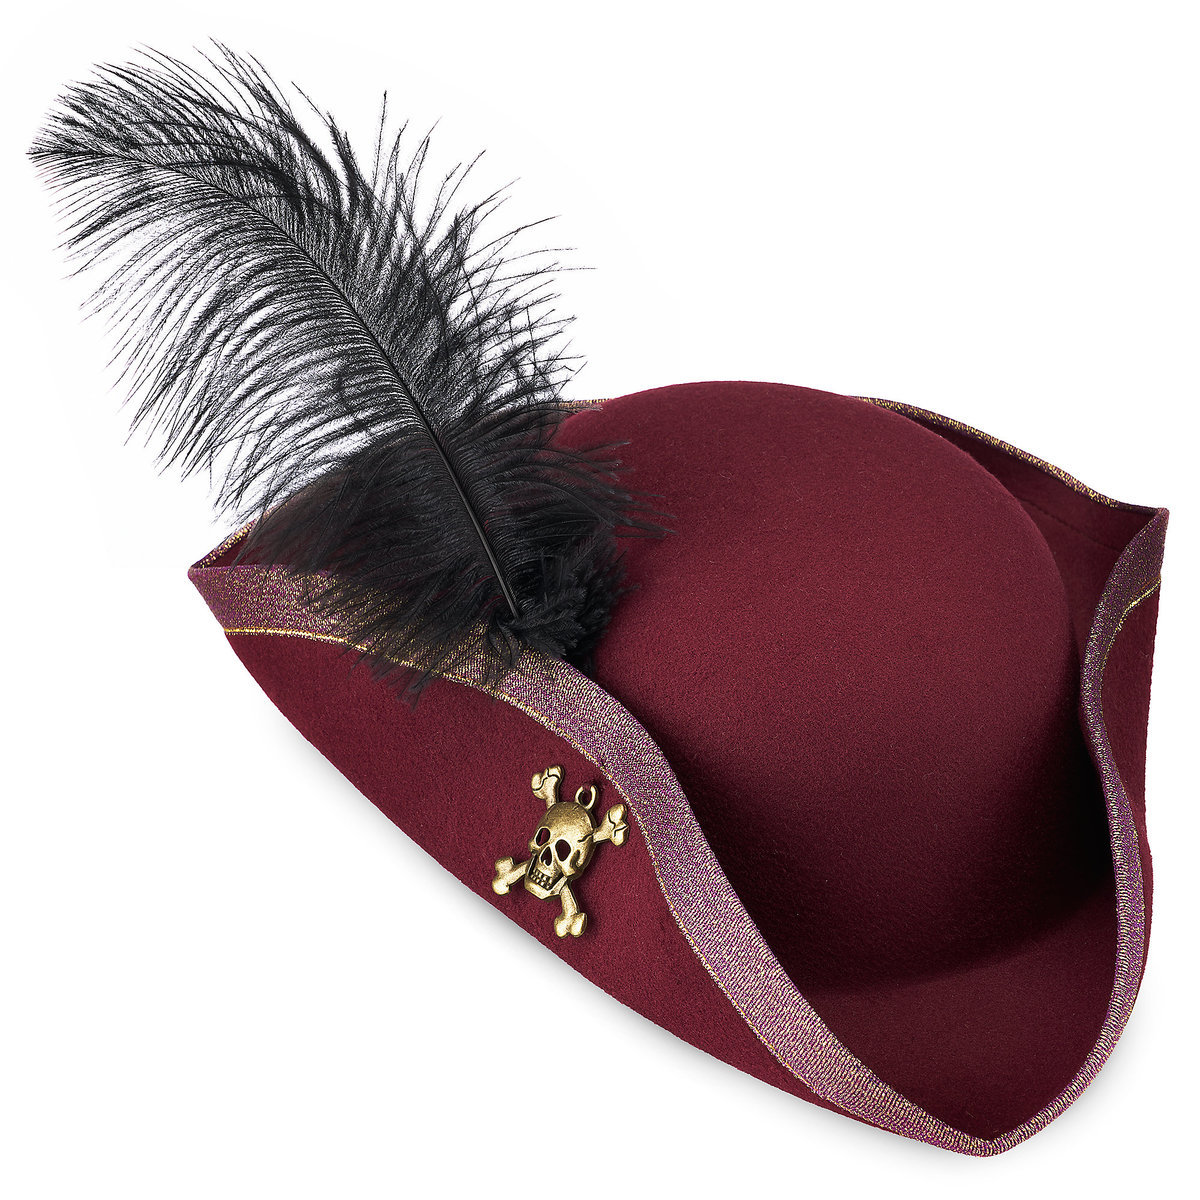 f4293f6c7 Product Image of Redd Pirate Hat for Adults - Pirates of the Caribbean # 1